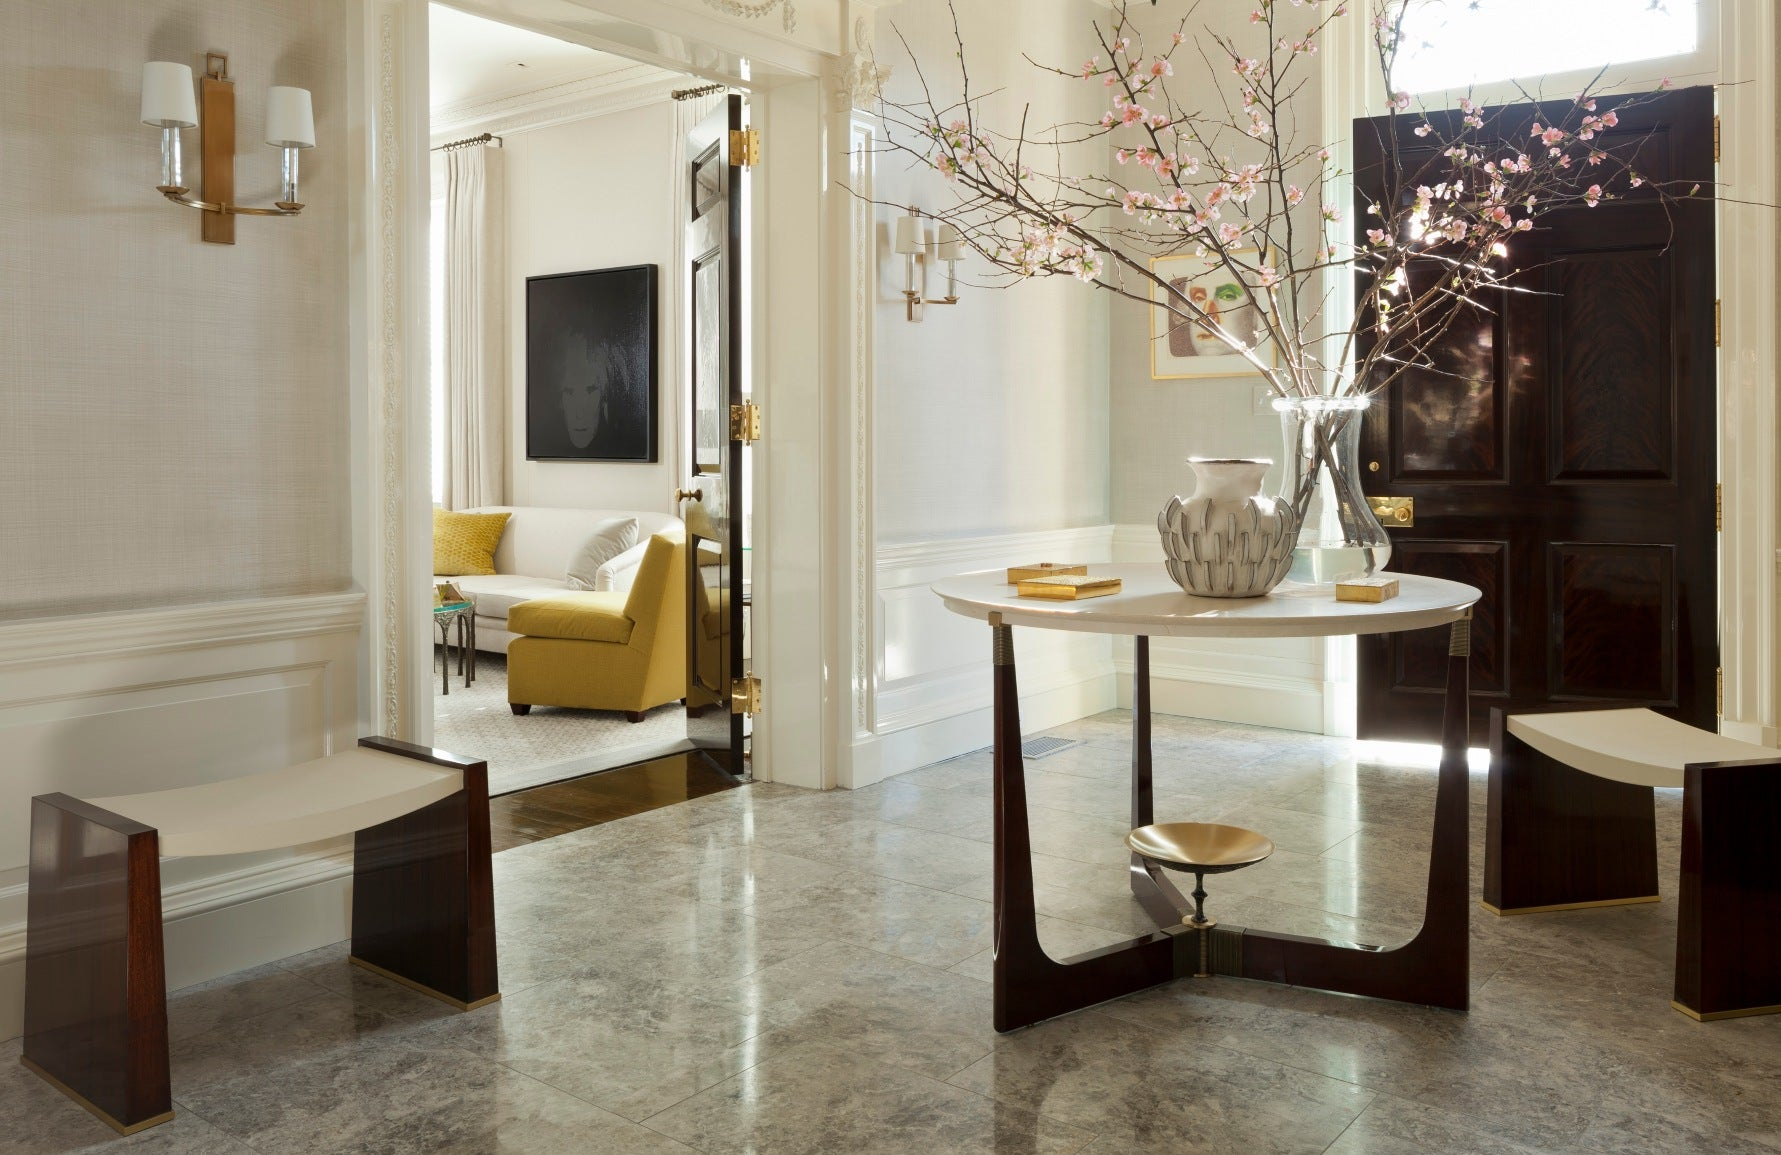 How To Style Your Round Entryway Table - Round Entryway Table – LuxDeco.com Style Guide